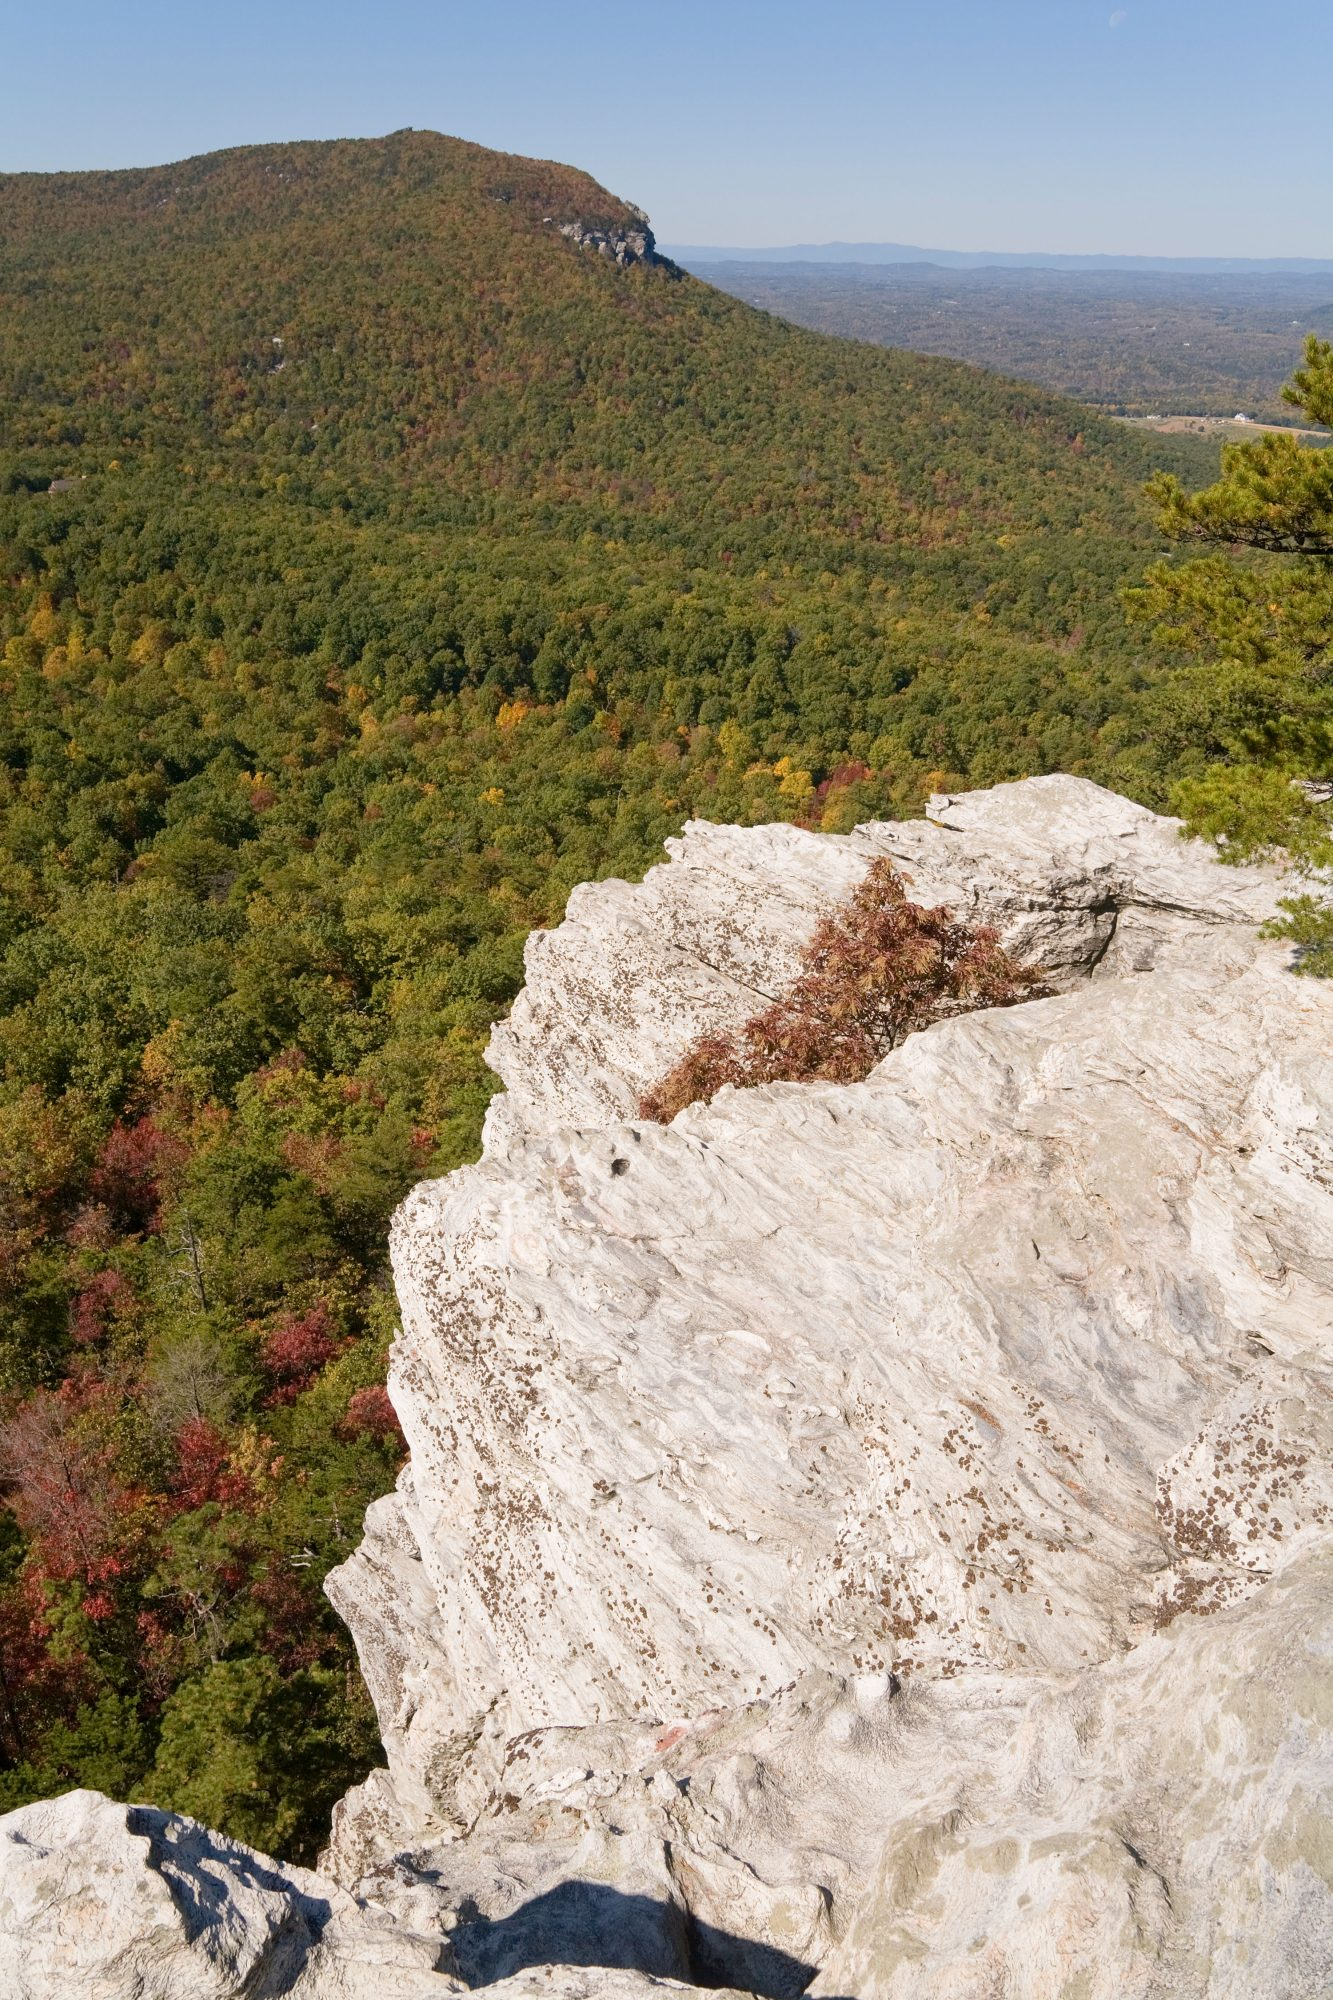 Hanging Rock State Park in NC